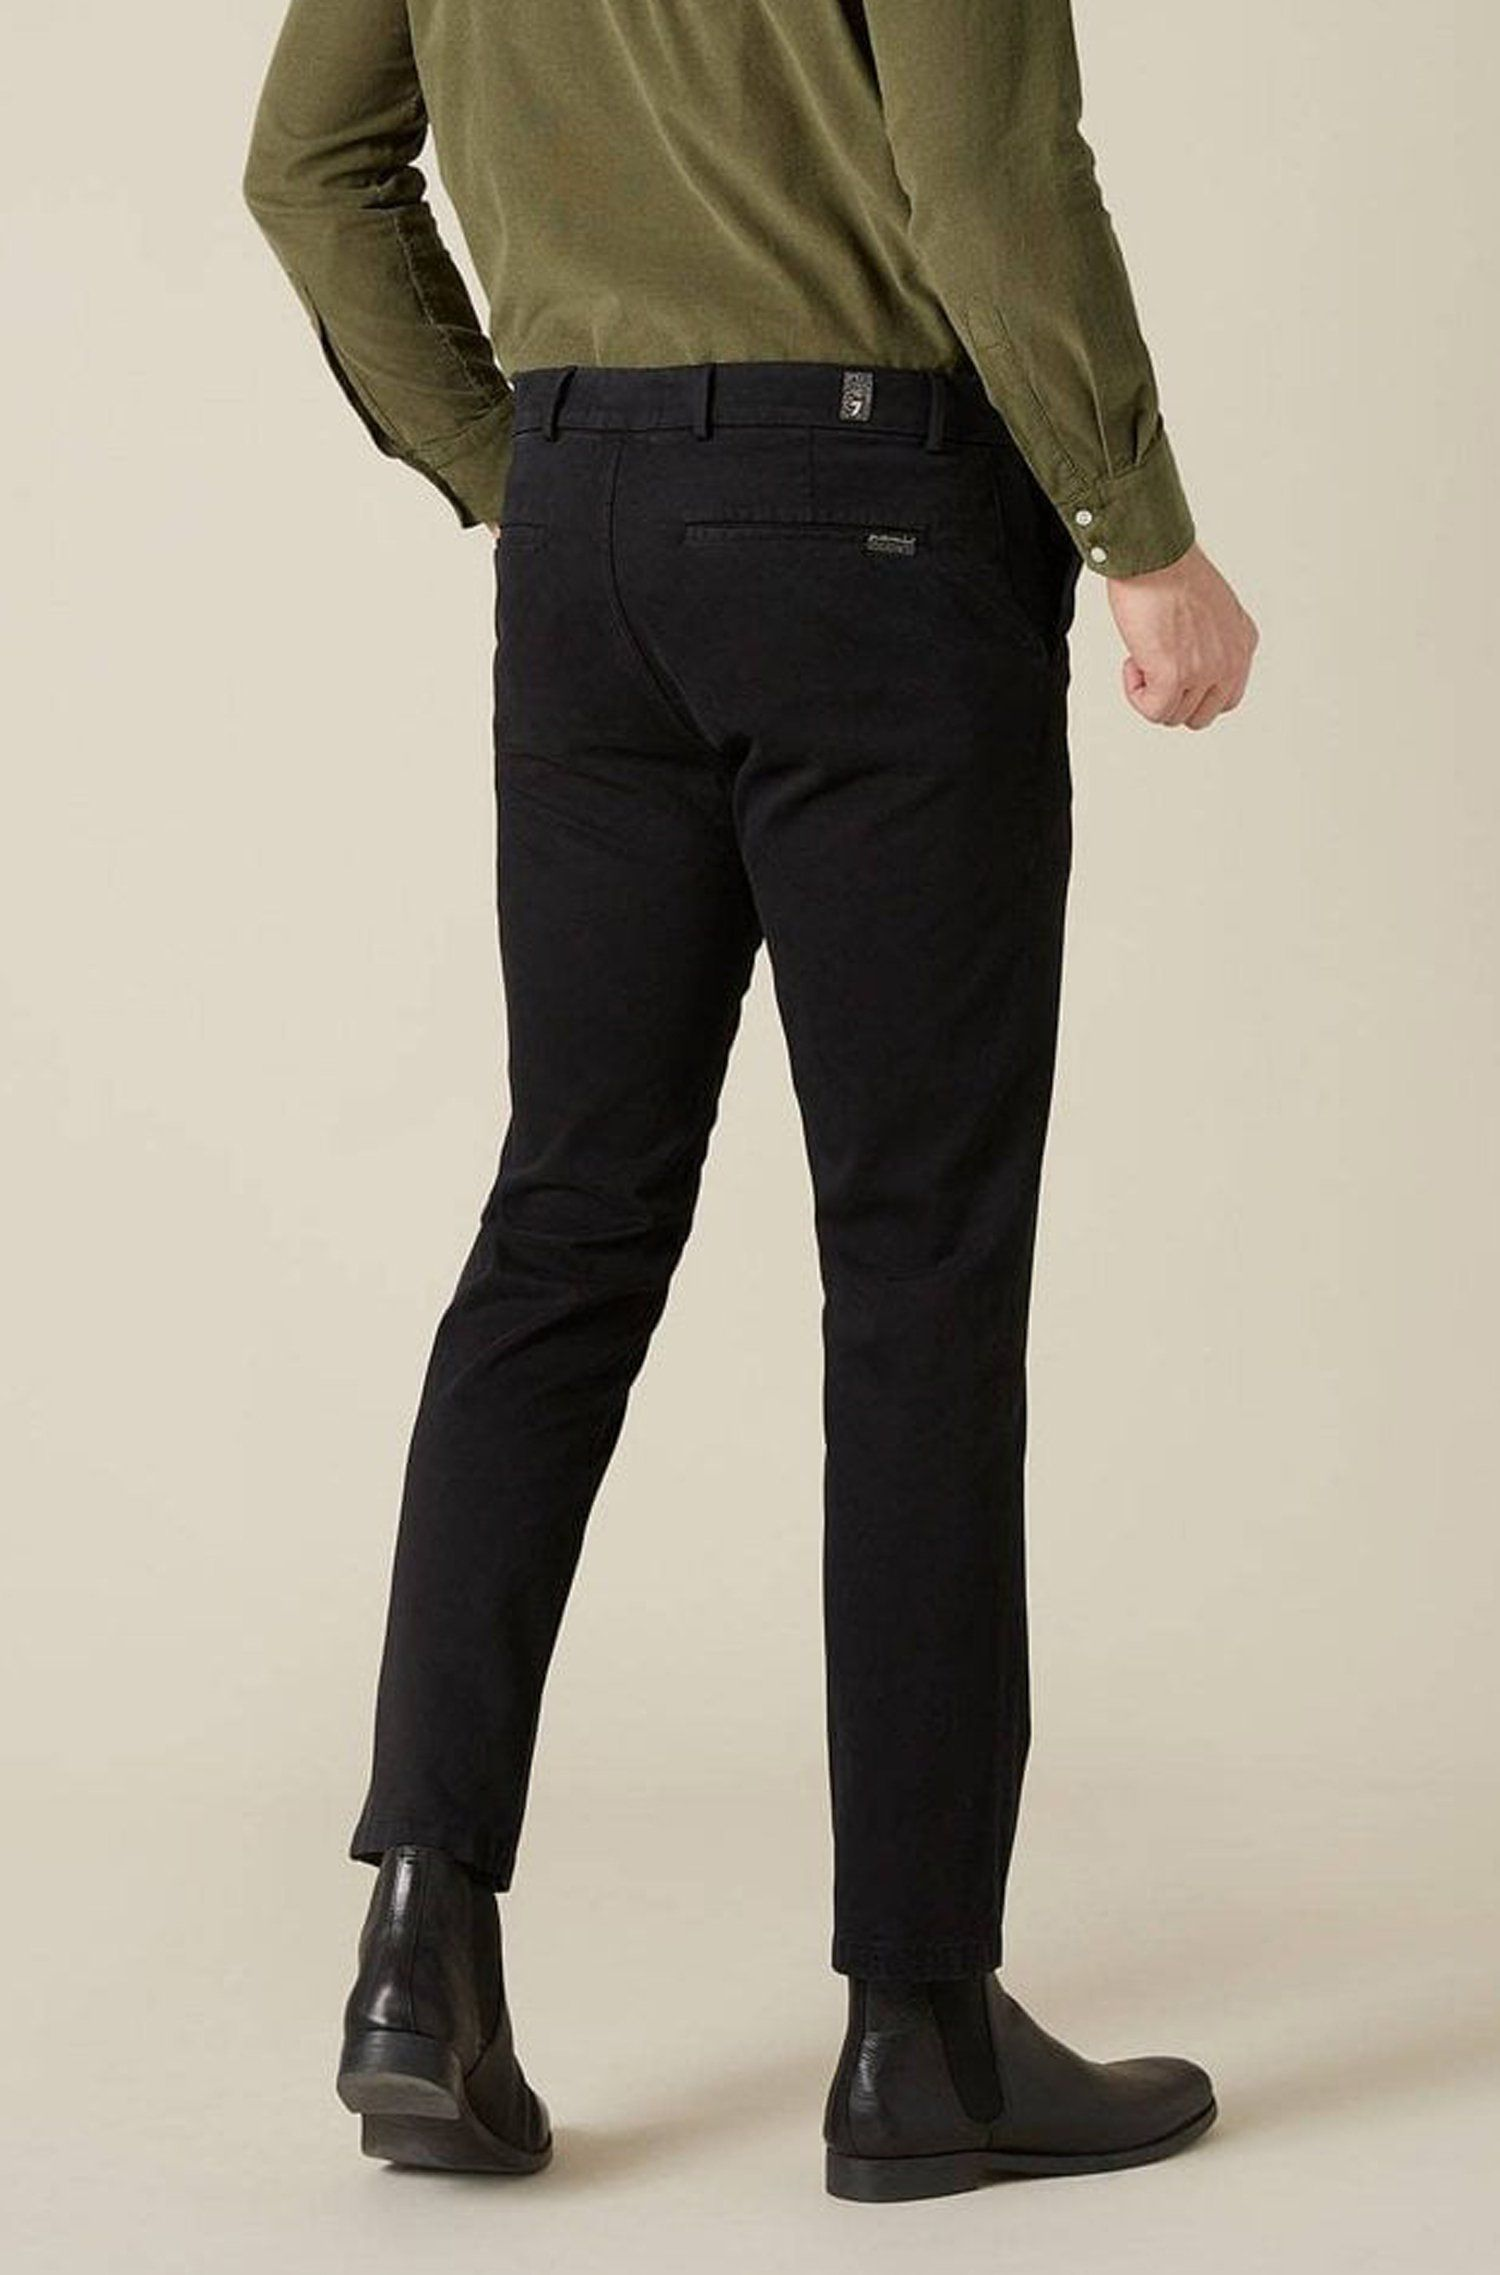 7 For All Mankind - Black Slimmy Chinos in Luxe Perf Sateen Fabric JSU9T490BL 32 R